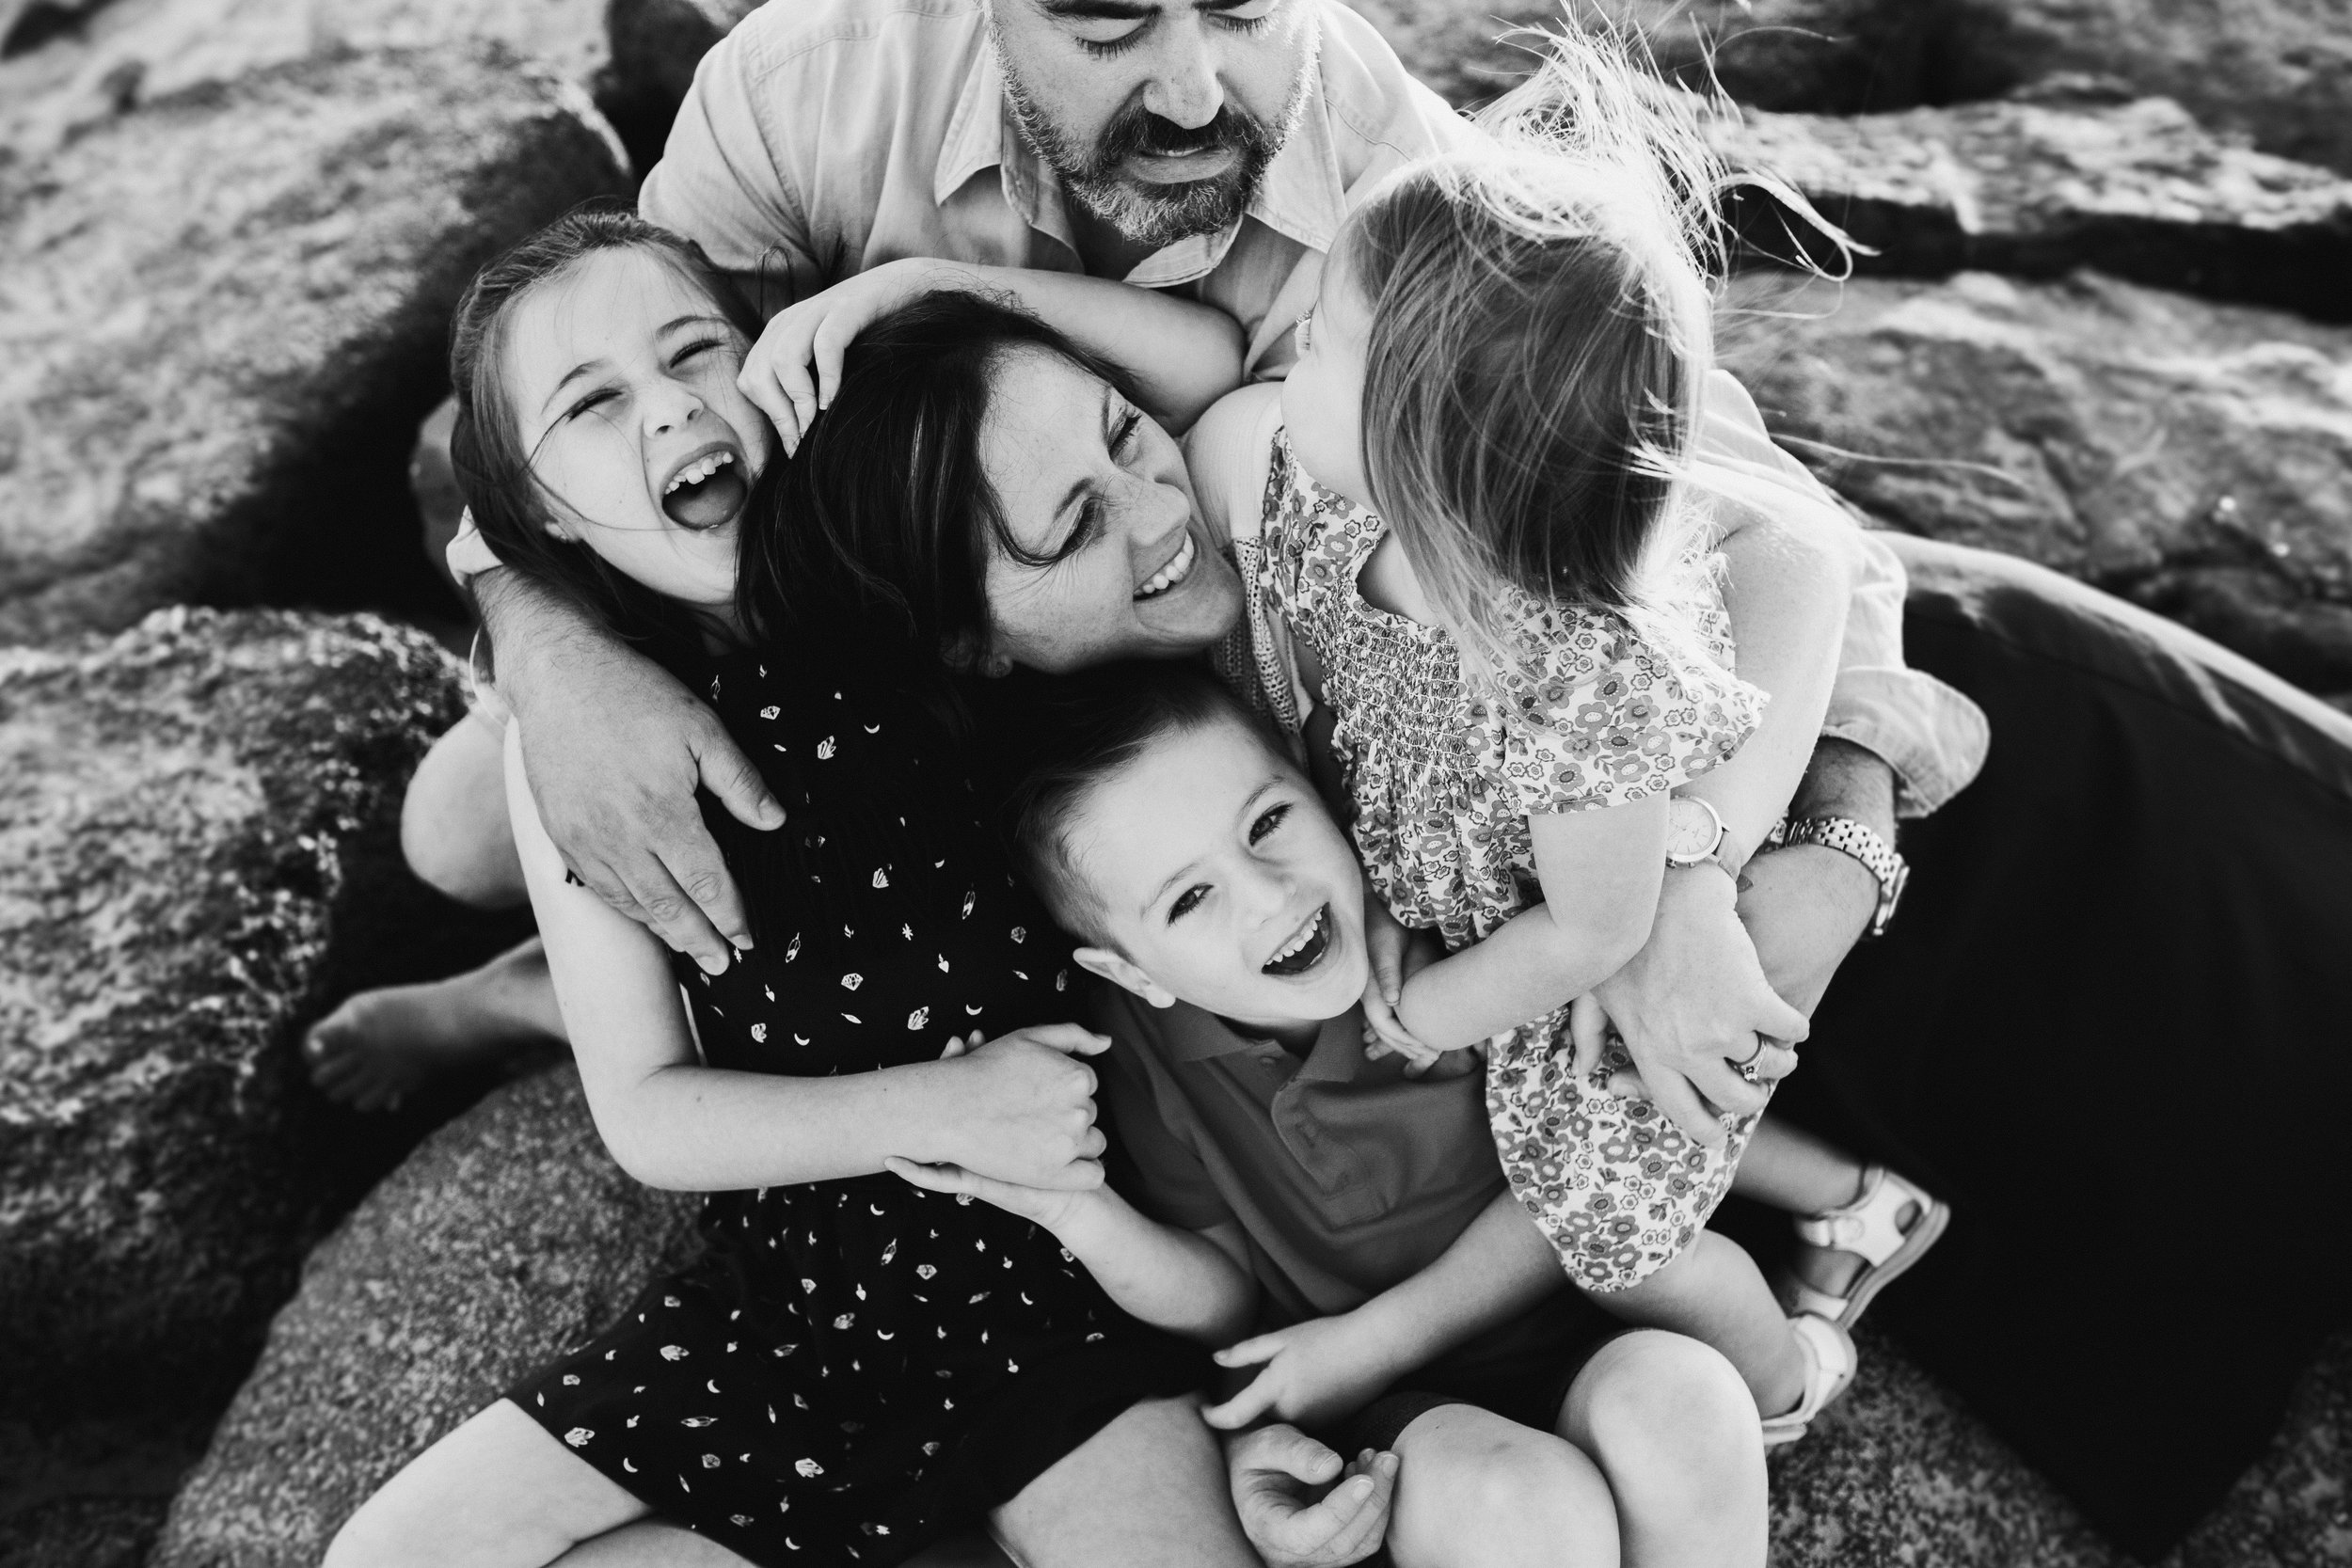 When I saw our photos I was so glad that we had taken the plunge! They are full of love and happiness. My biggest fear was that it would be a waste of time and we wouldn't get any great photos because we were tired, run down or that the kids would be cranky.  Thank you for capturing photos of us just having fun and enjoying our children, they are the photos I really needed to have.  And thank you for getting us together for real family time, I loved it so much. I got so much enjoyment out of just focusing on us and making each other laugh, smile and play. THANK YOU!  - Kate